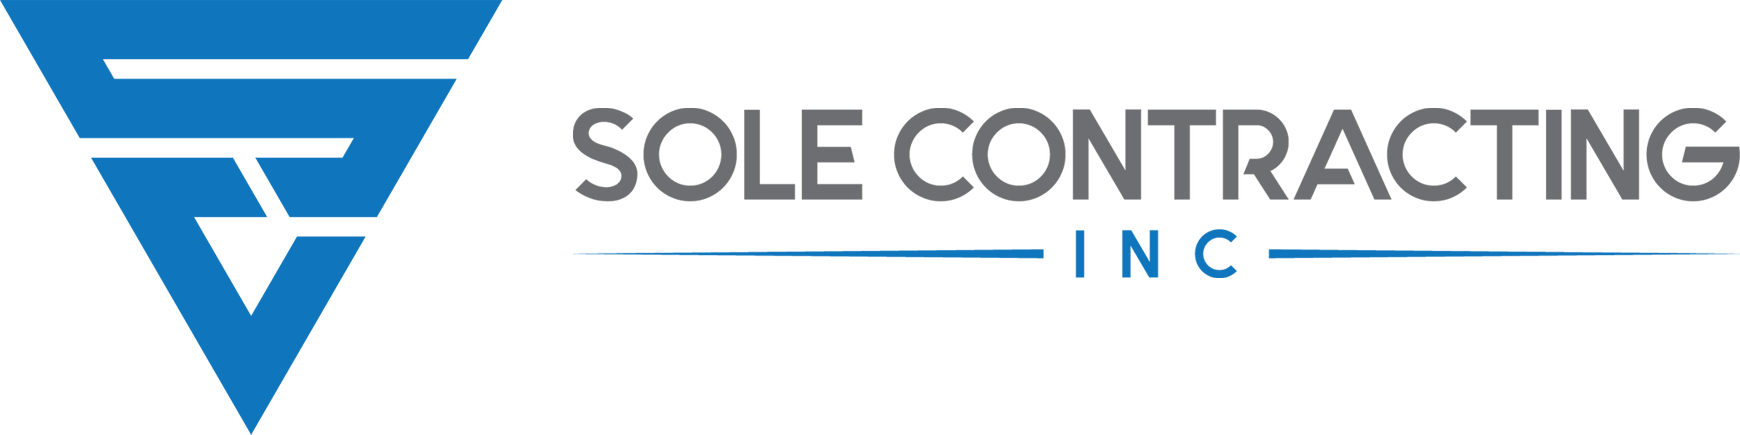 Sole Contracting